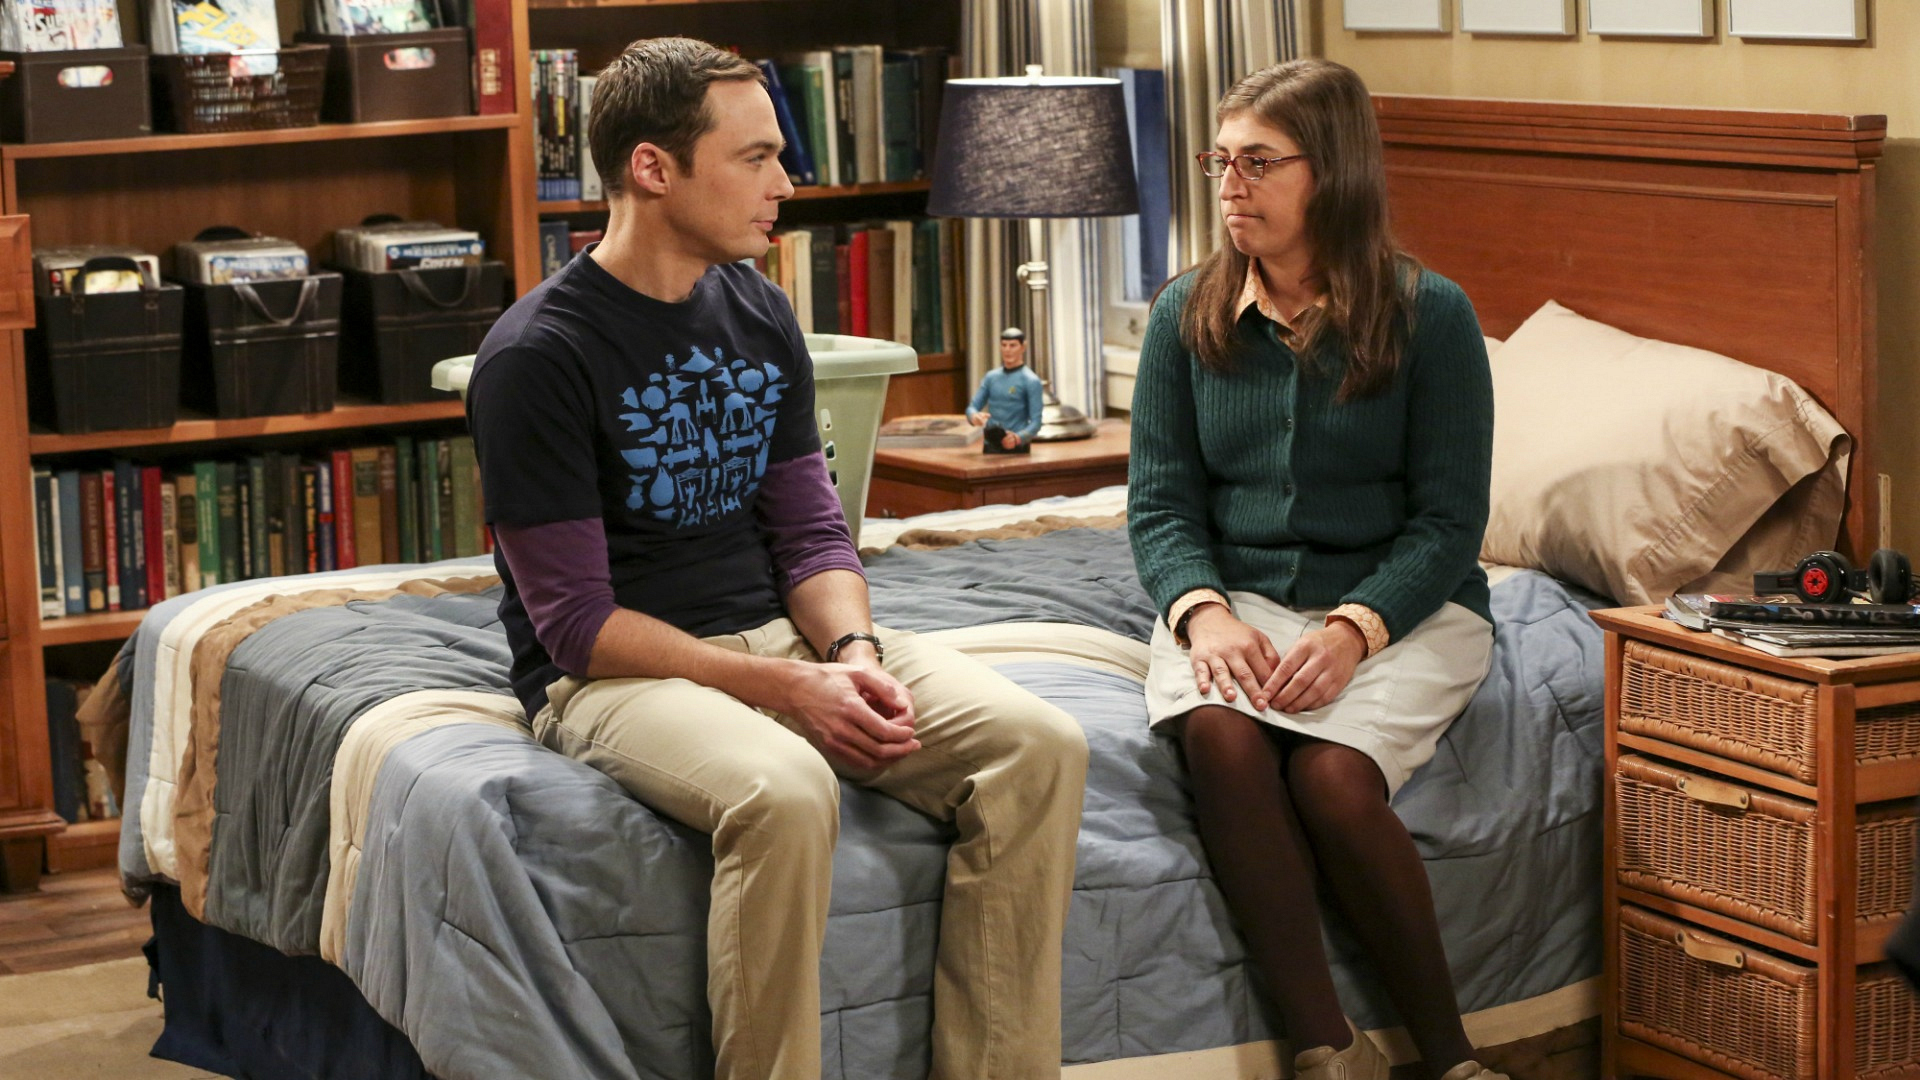 Sheldon and Amy have some serious things to talk about in his bedroom.